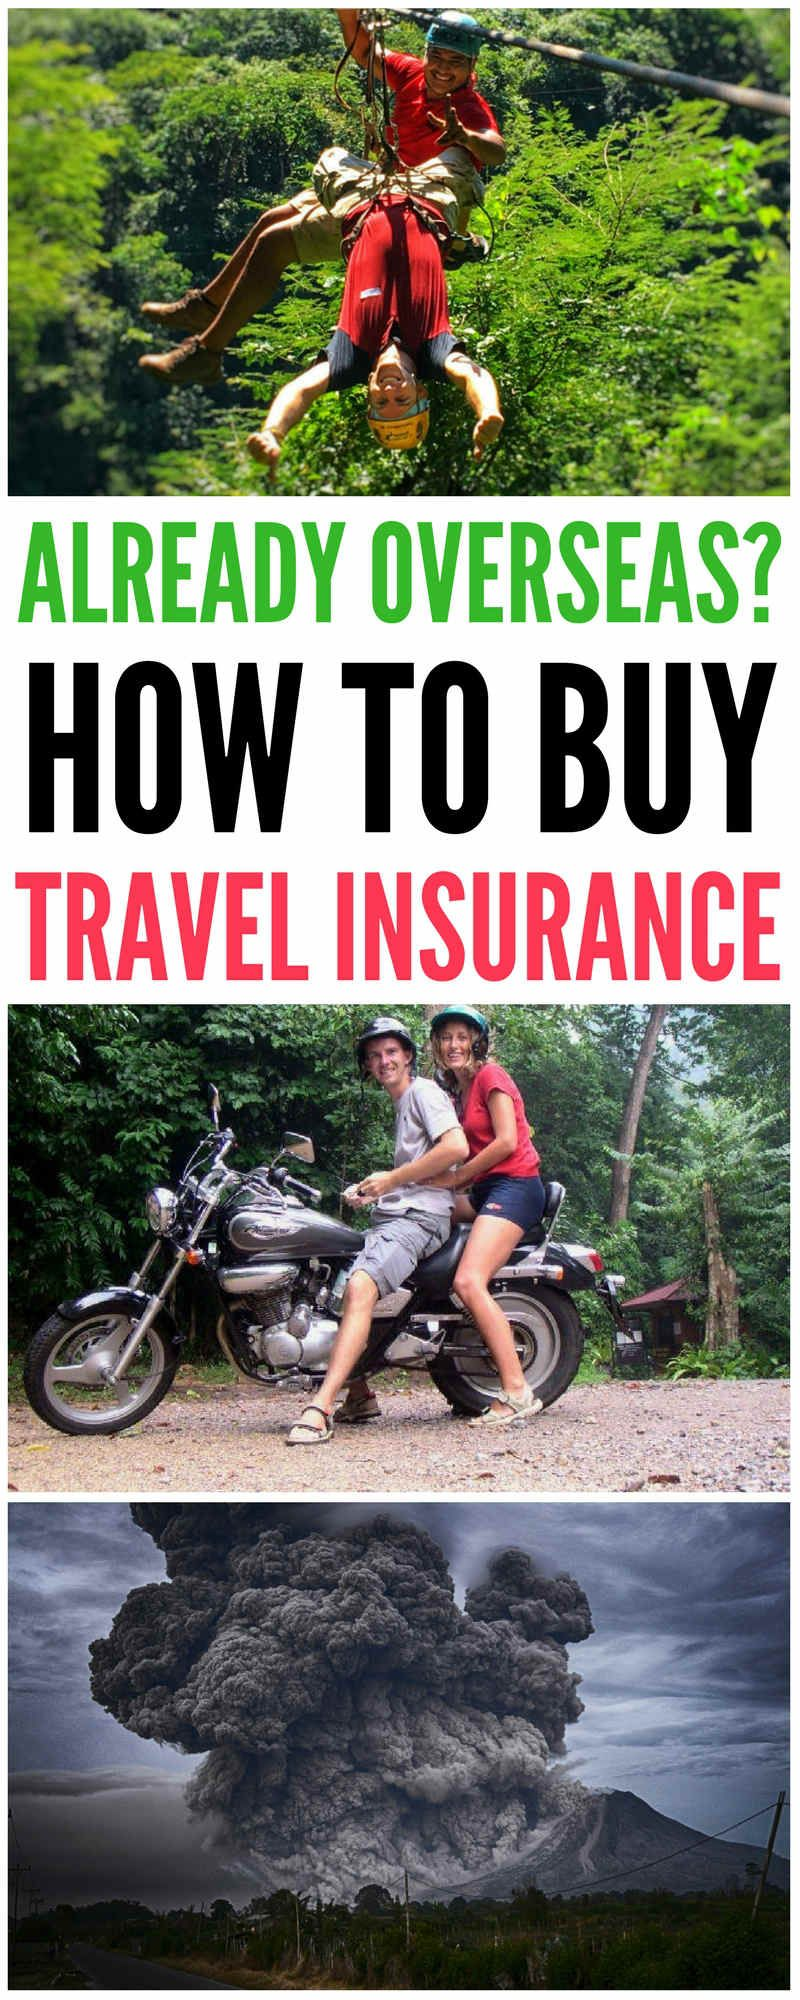 Can I Buy Travel Insurance If I'm Already Abroad? (With ...